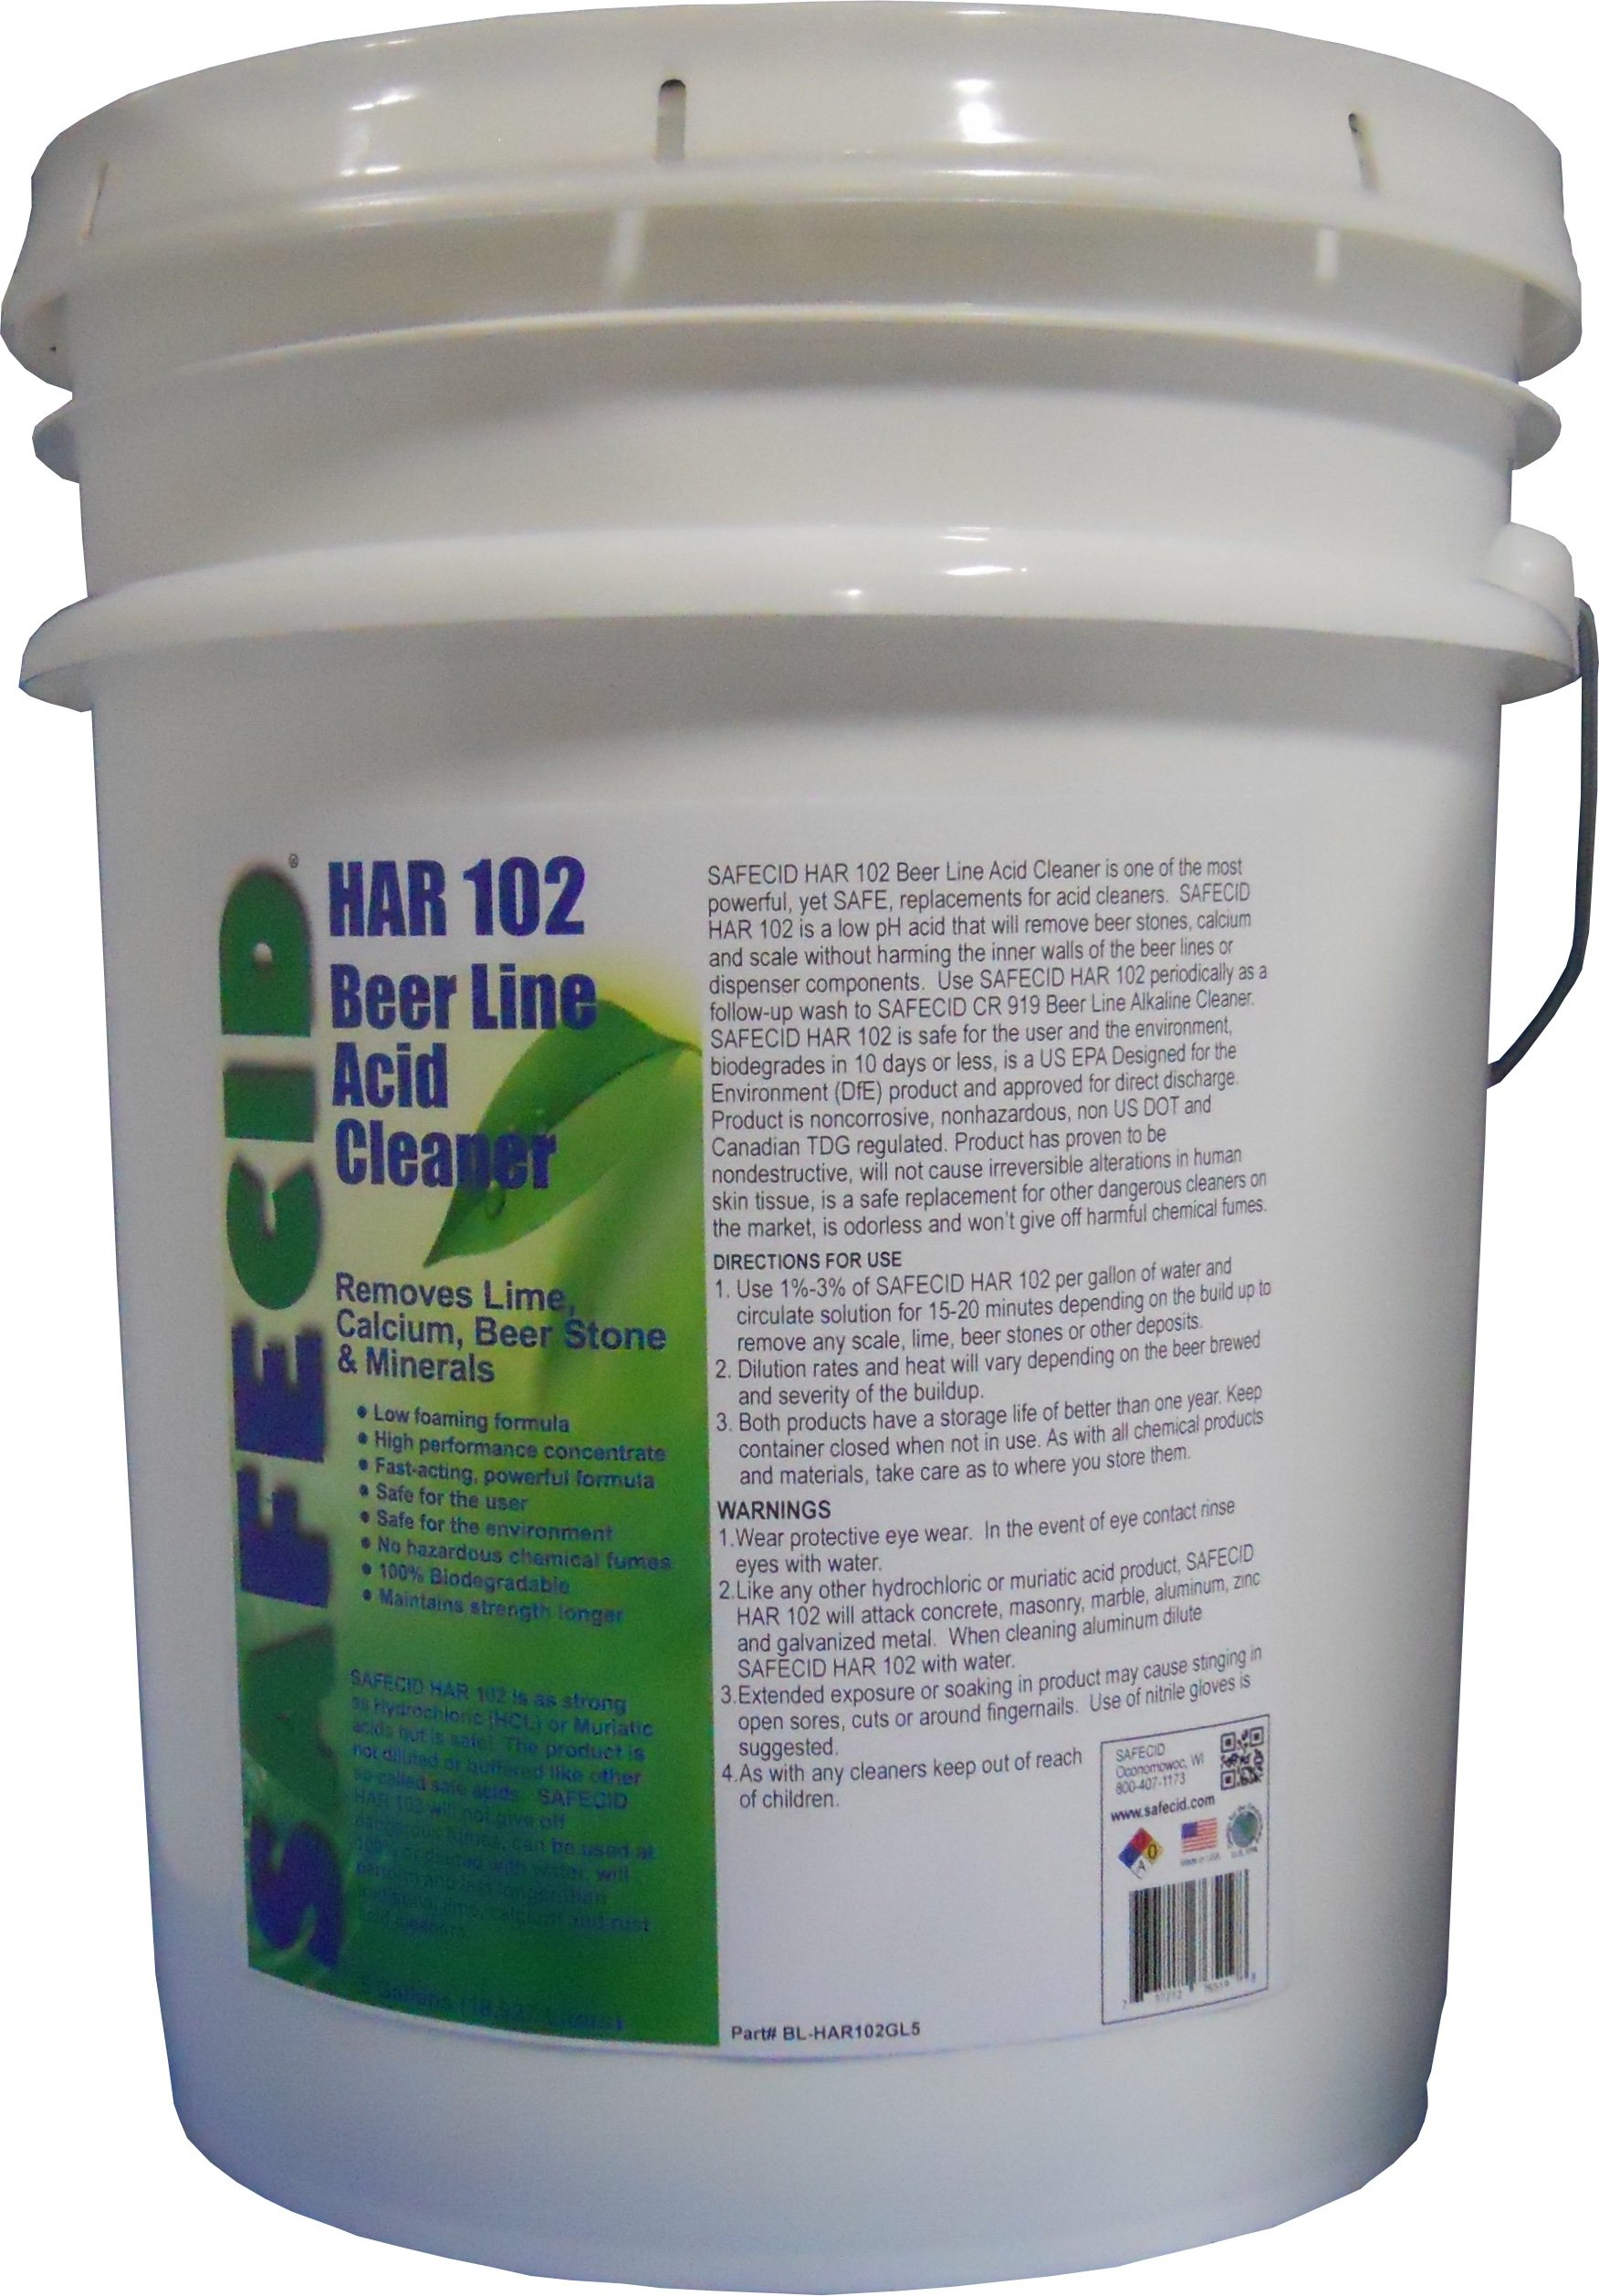 Beer Line Acid Cleaner 5 Gallon Pail